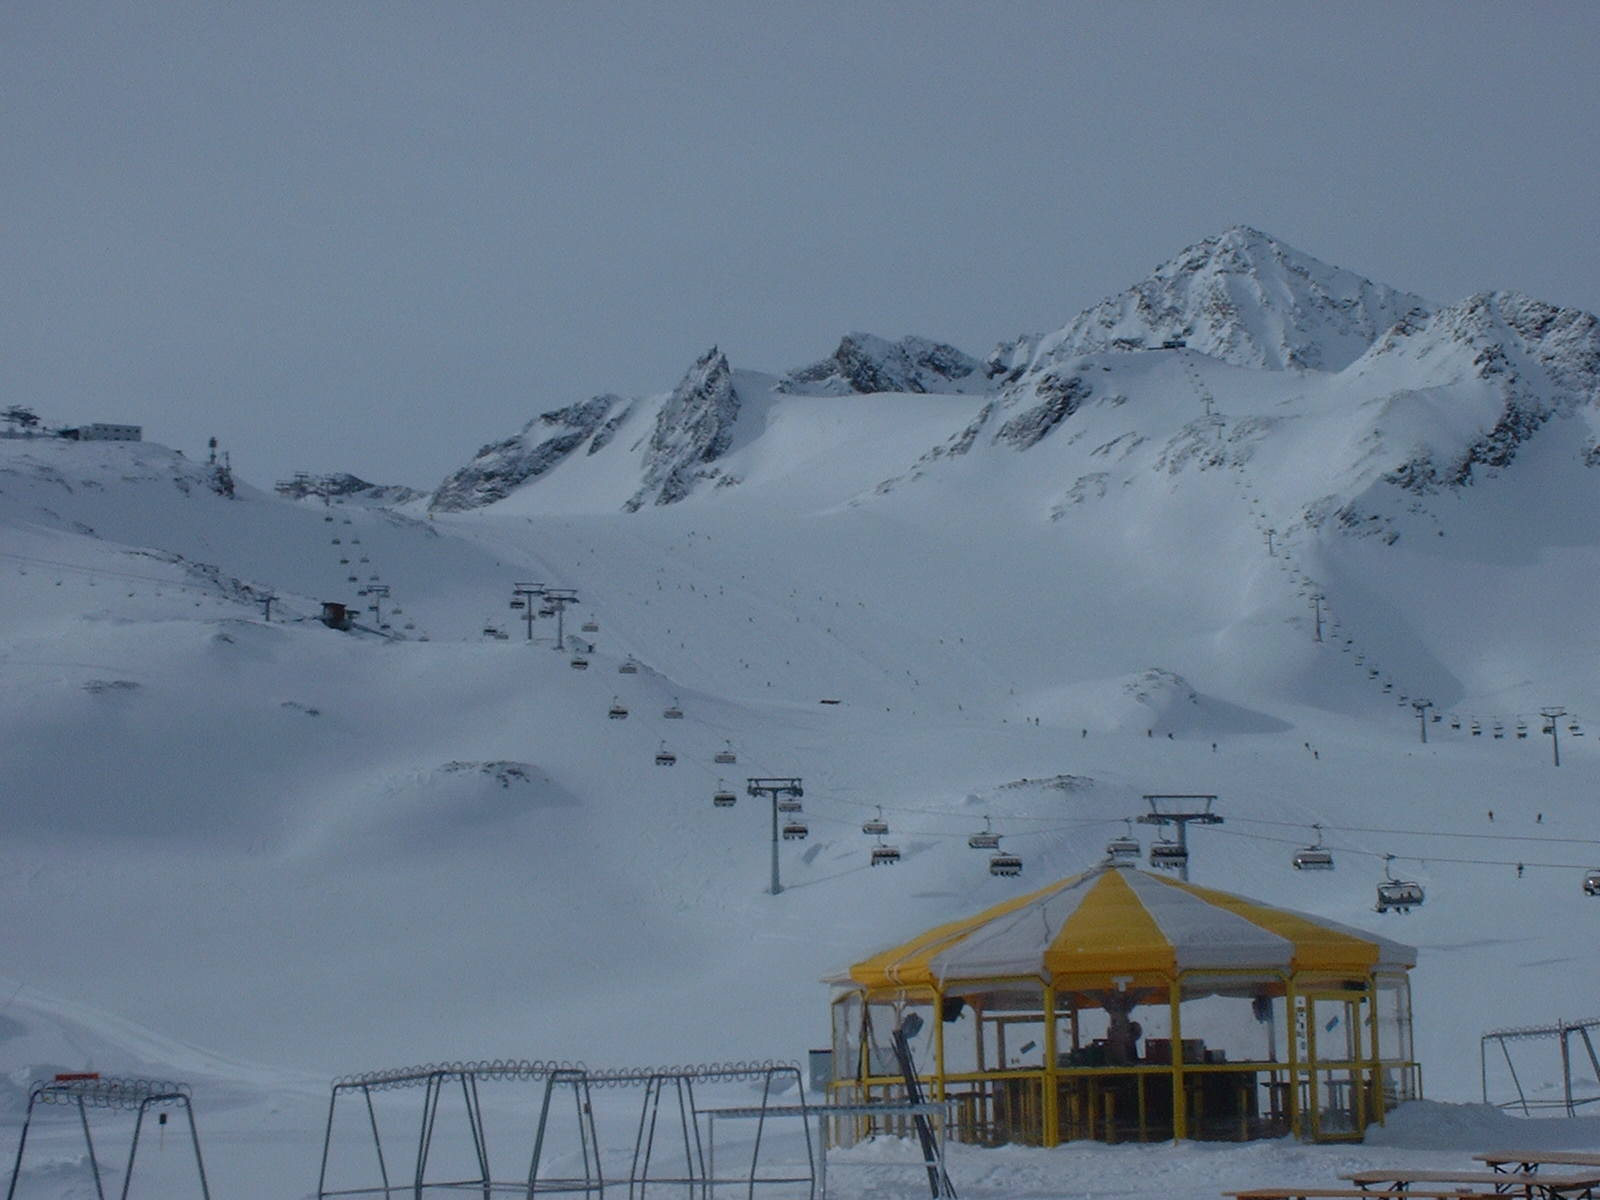 Two mountains, covered in snow, under a cloudy grey sky. Two ski lifts run up towards them. In the foreground is a glass-walled gazebo with a yellow roof.